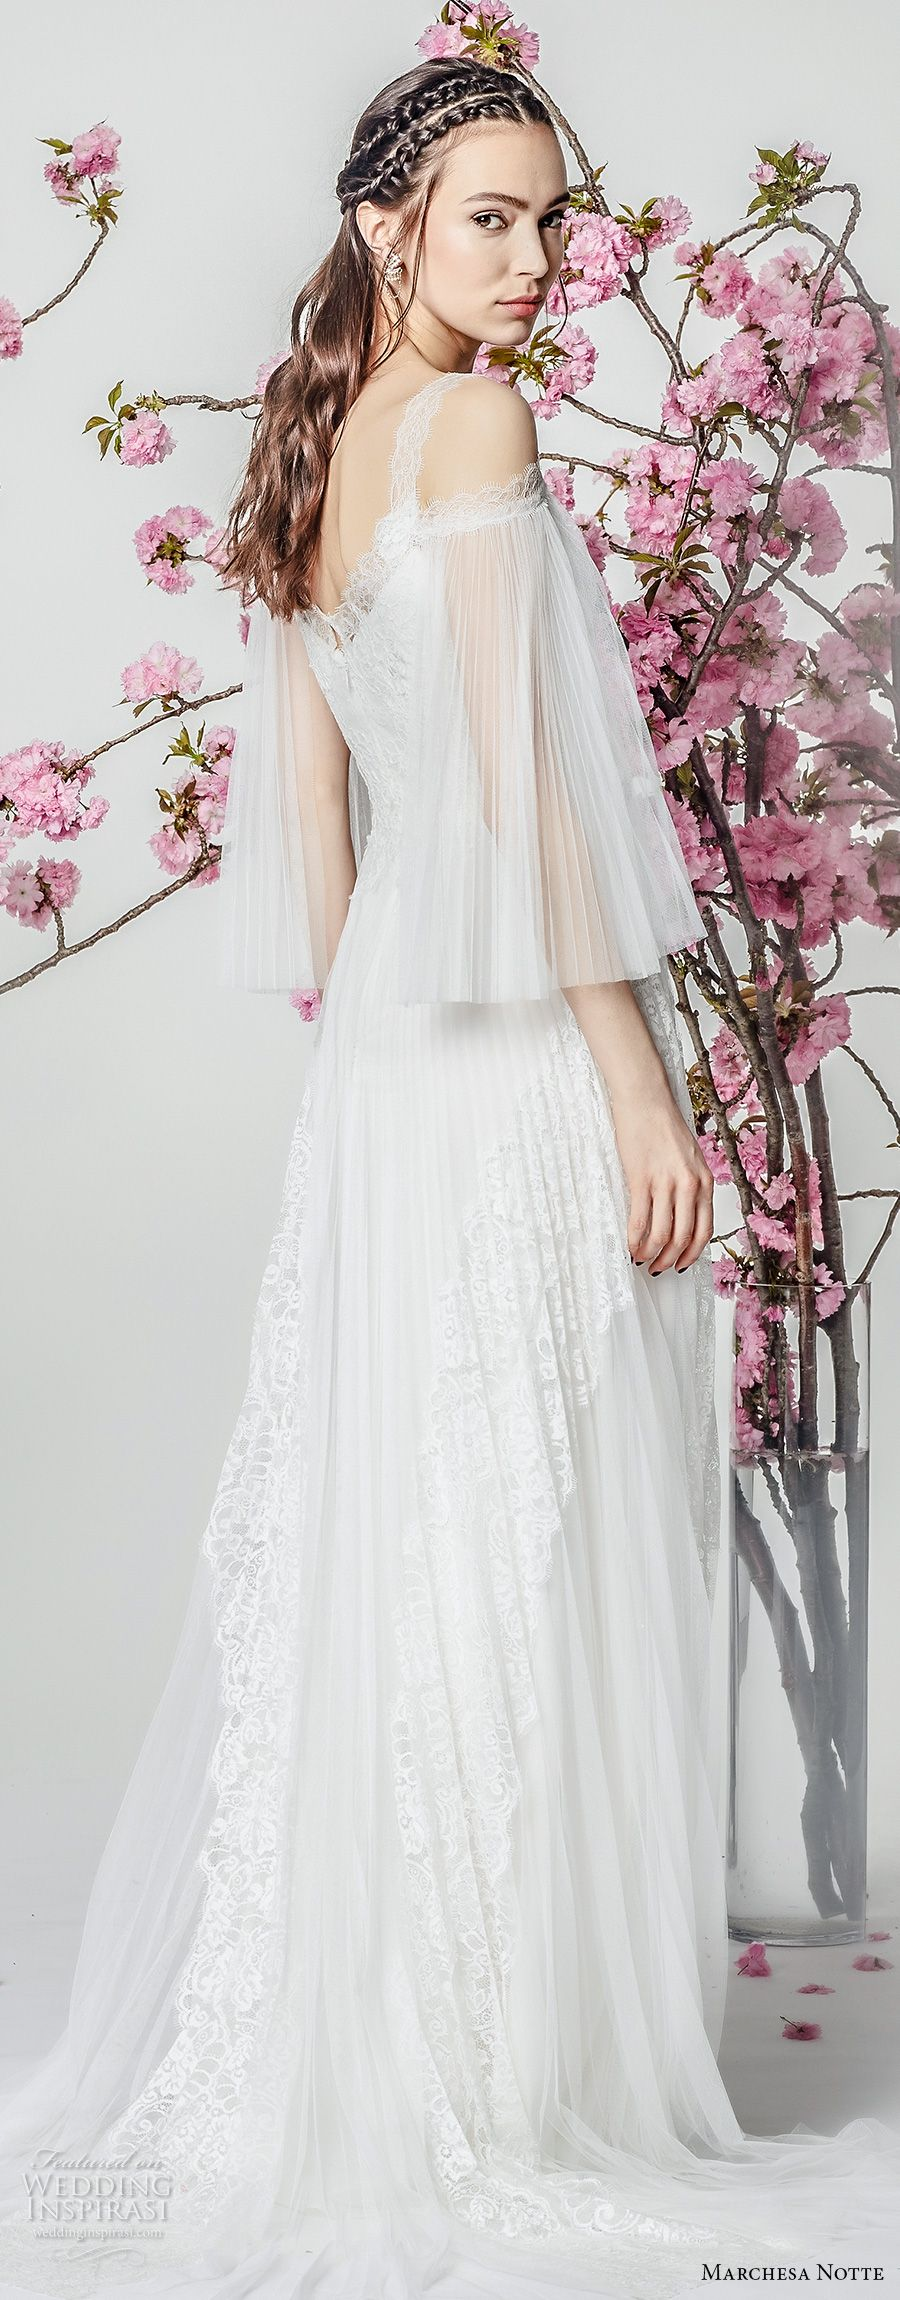 Marchesa notte spring wedding dresses romantic marchesa and